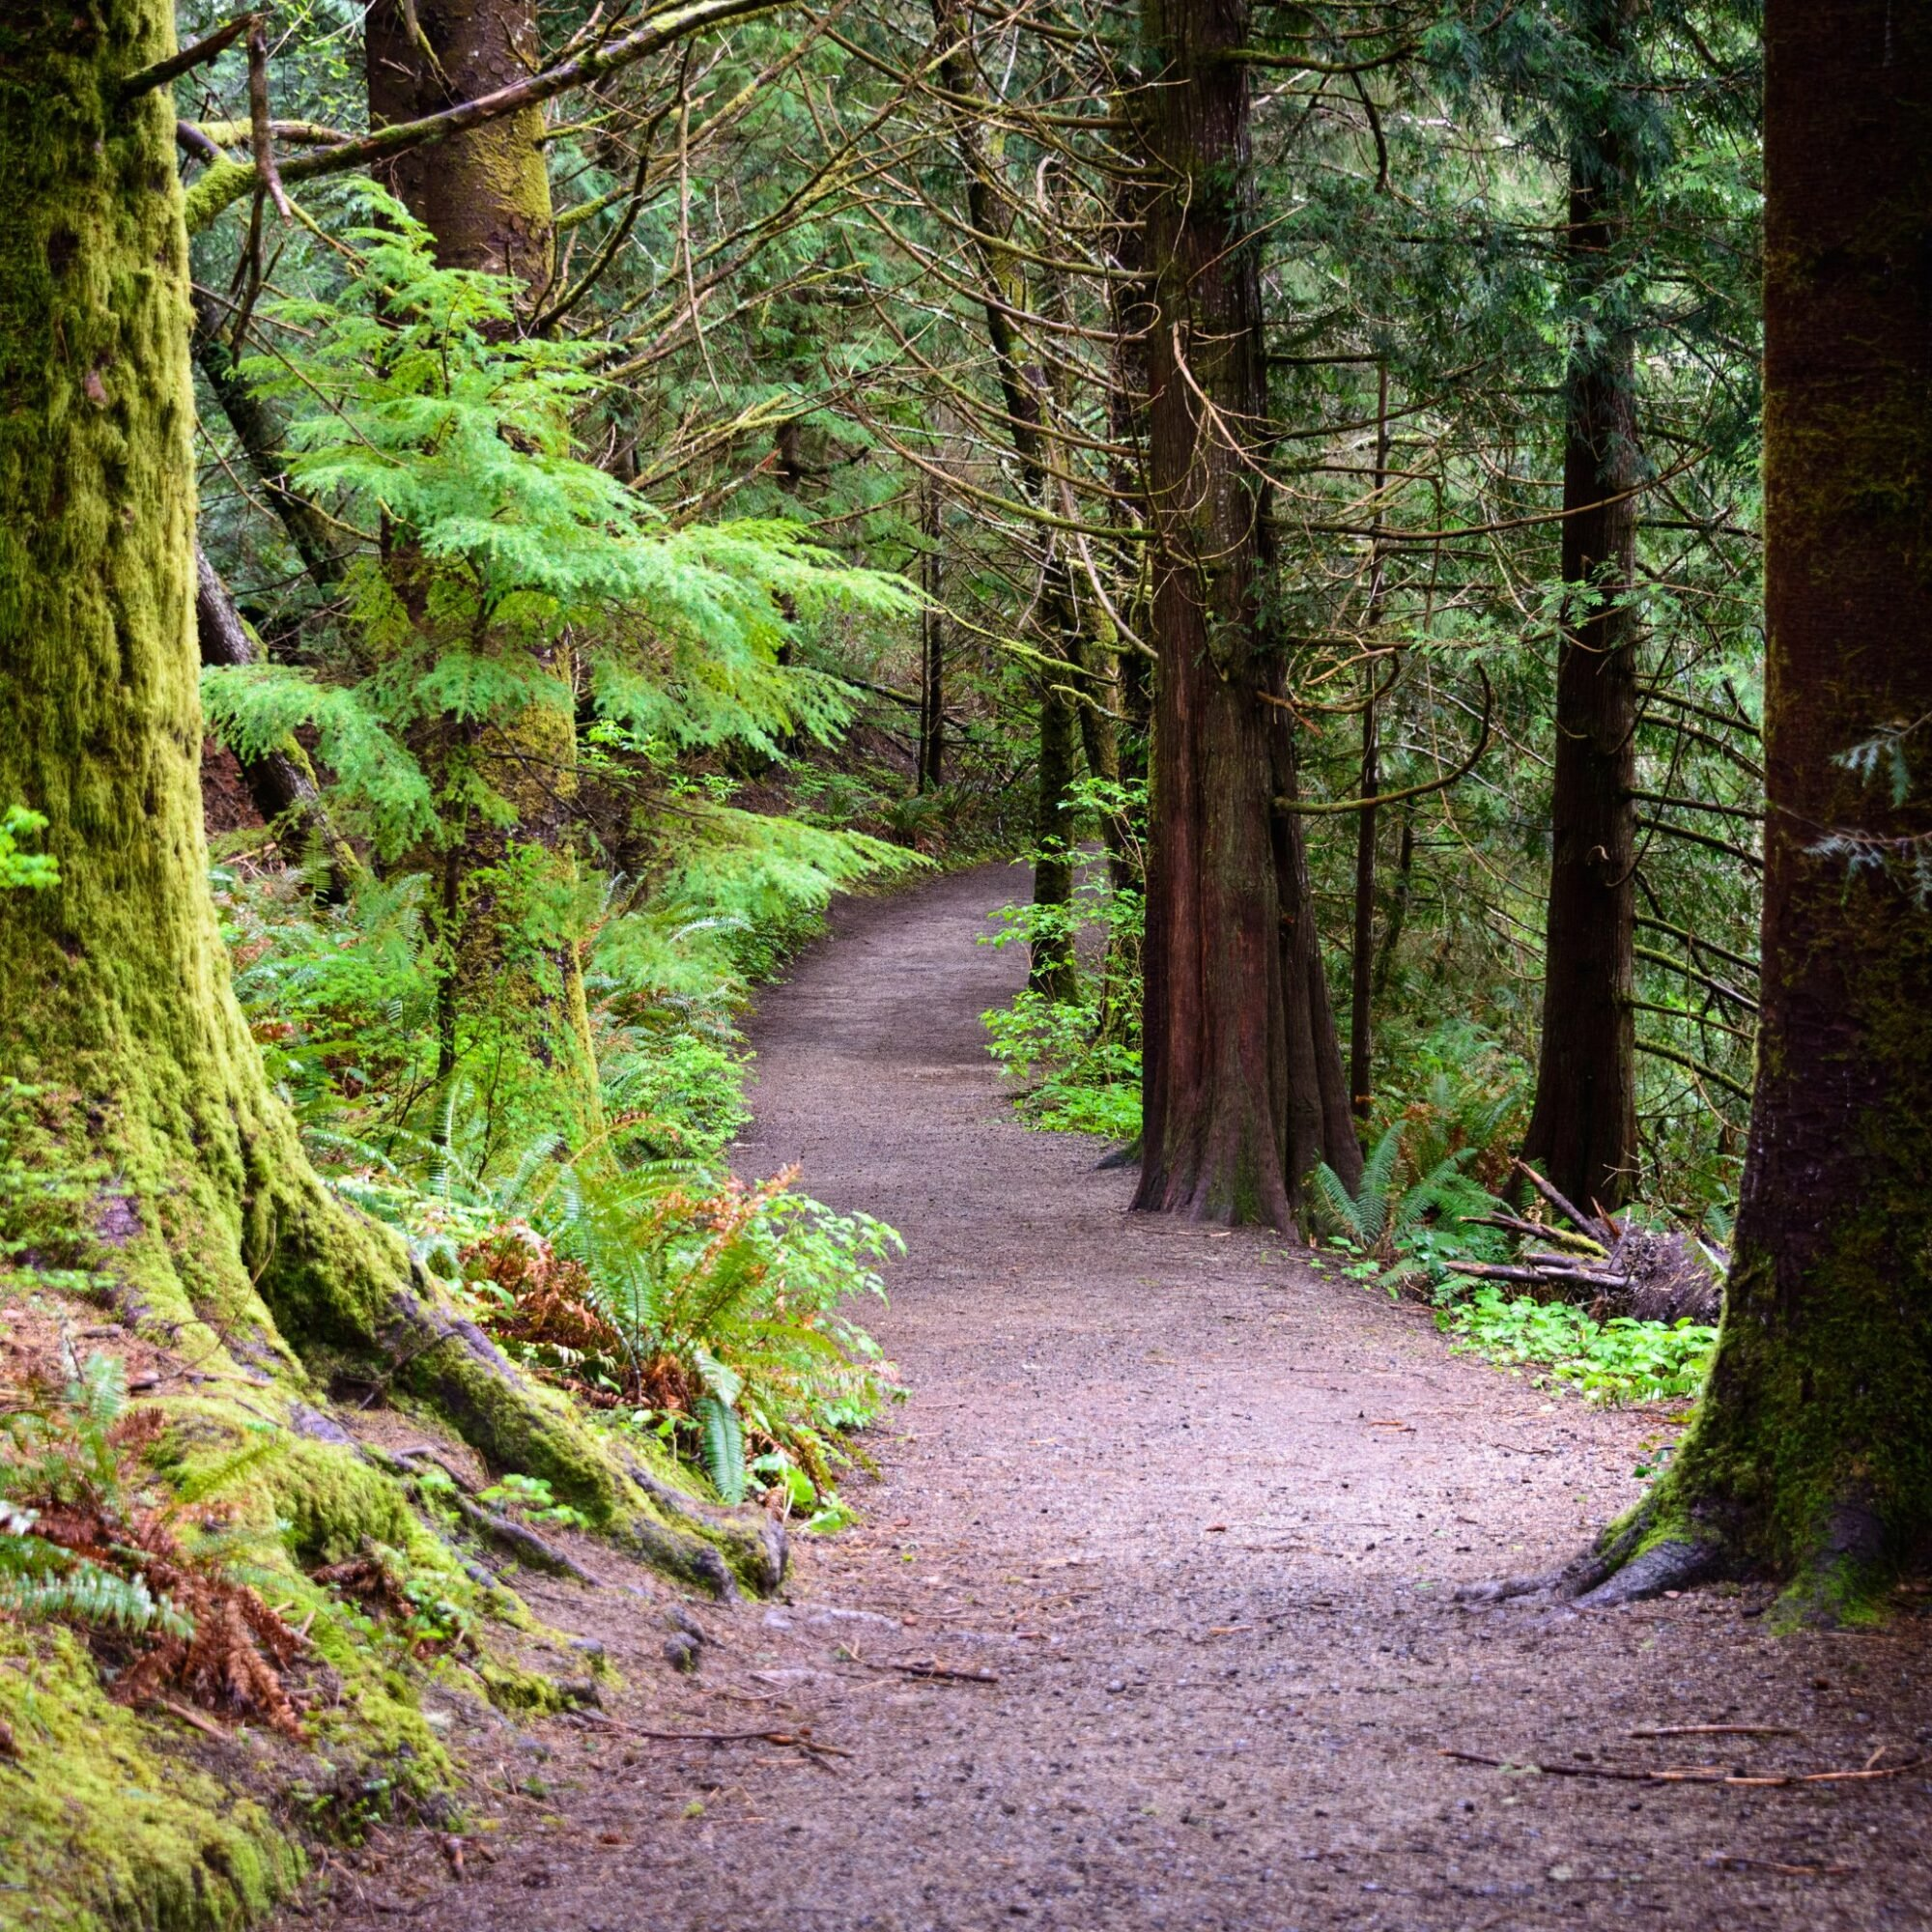 A beautiful trail in Washington state.